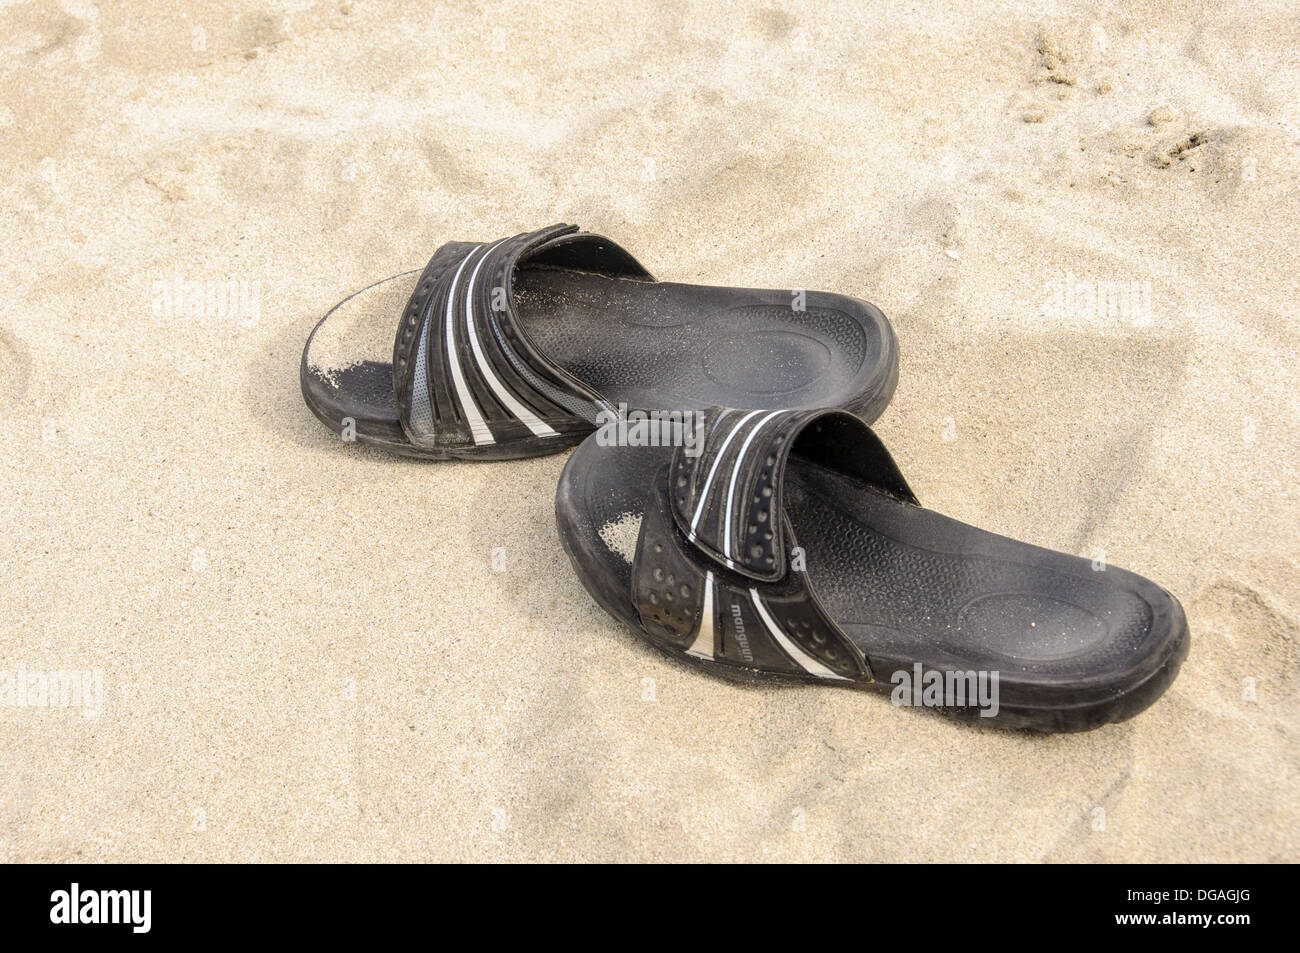 Beach slippers, thongs, on a sand beach, symbolizing holidays and vacations Stock Photo